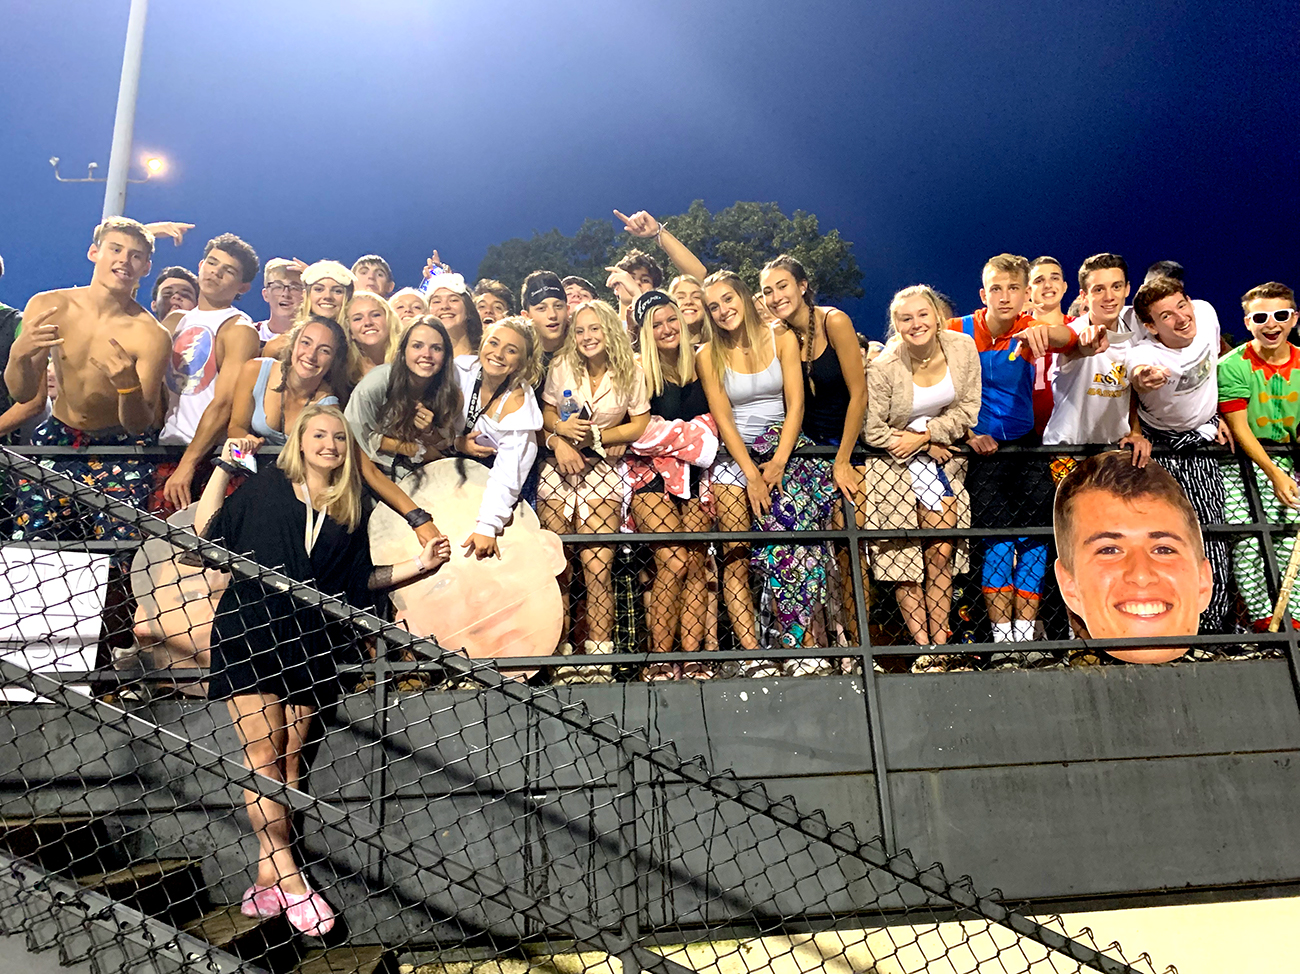 For students who are new to the district, Friday night entails equal parts culture shock and exhilaration.